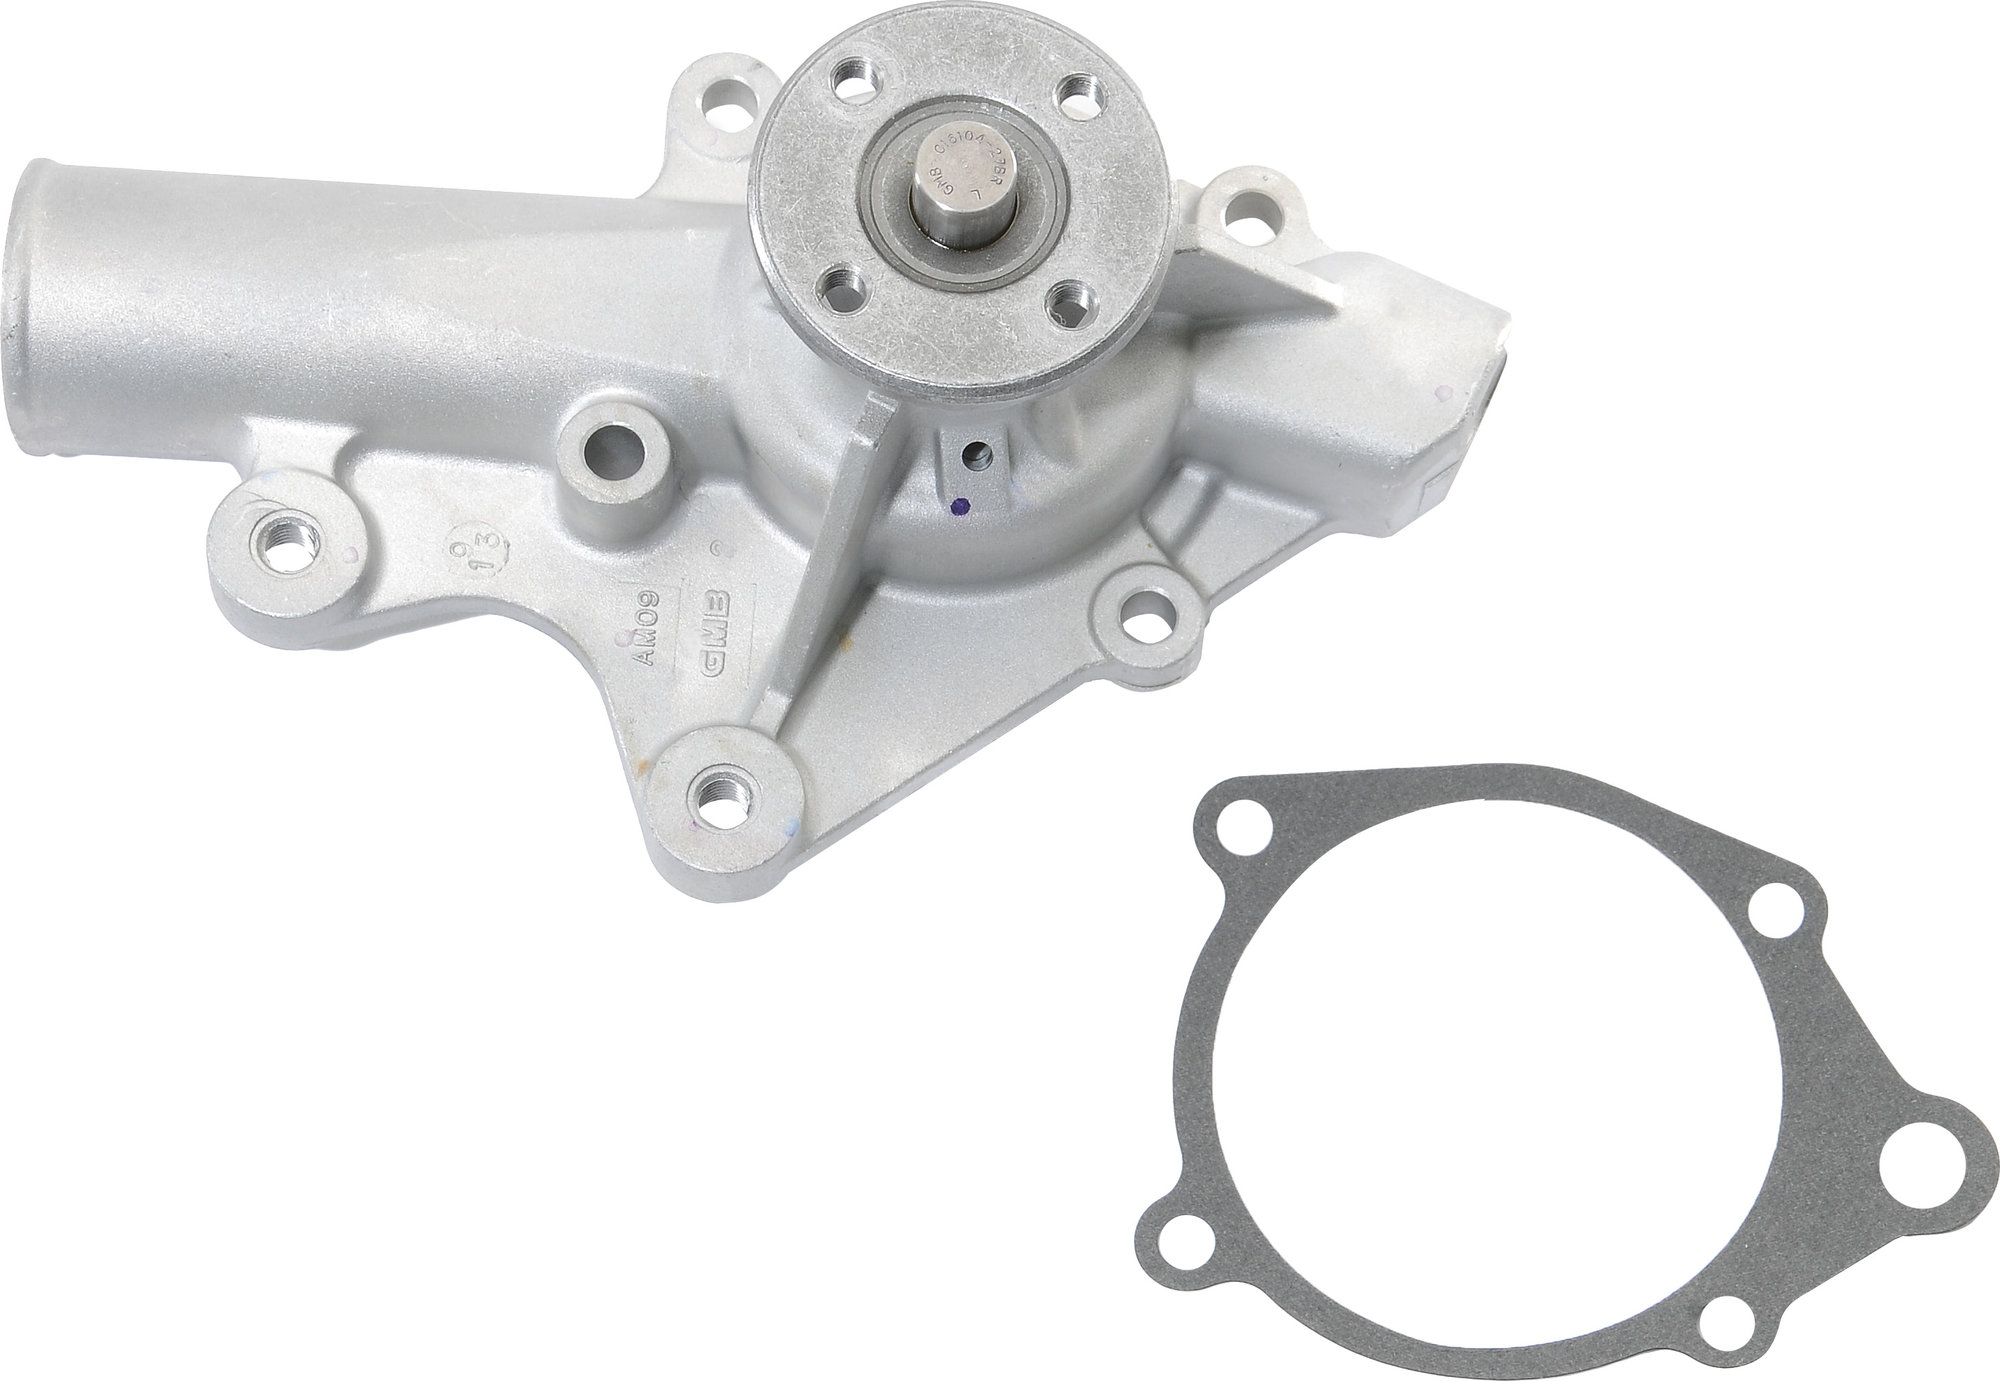 Flowkooler 1748 Water Pump For 91-02 Jeep Wrangler YJ, TJ